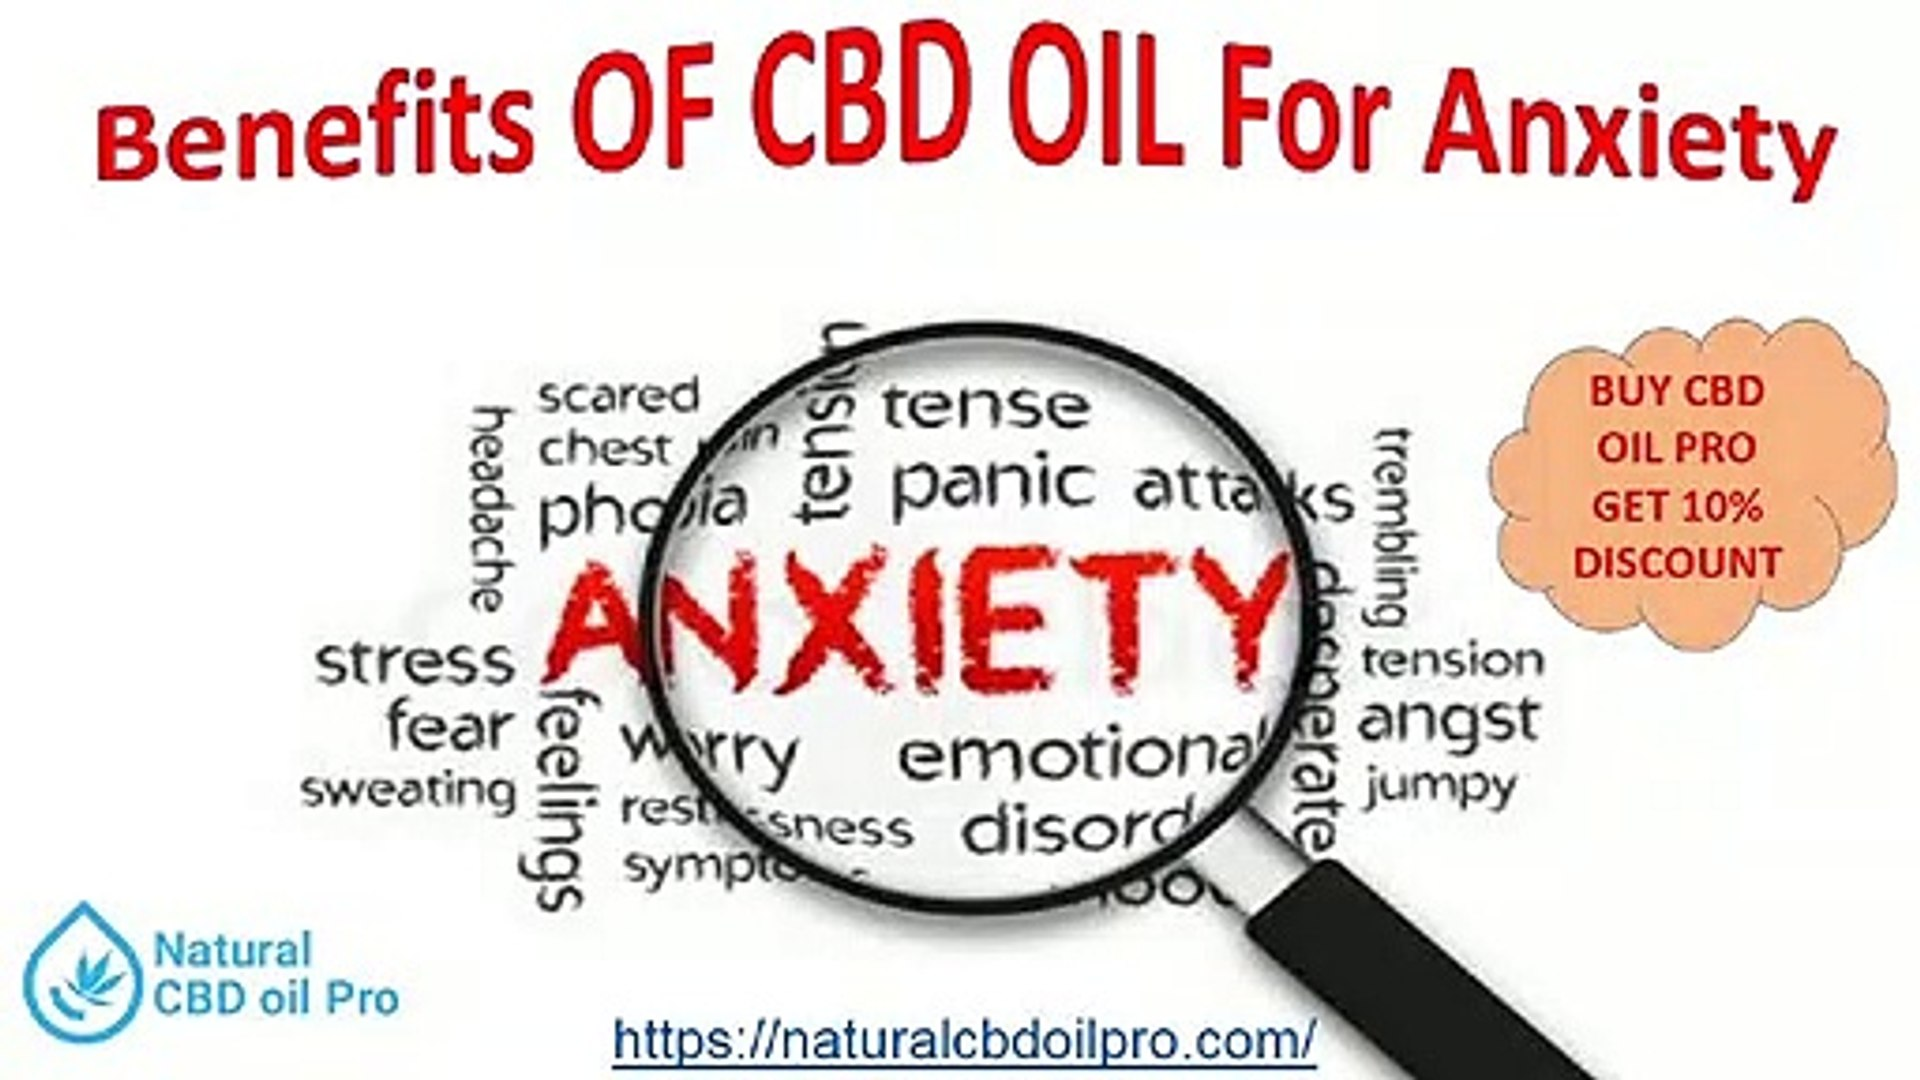 USE OF CBD OIL PRO IN ANXIETY & ITS BENEFITS